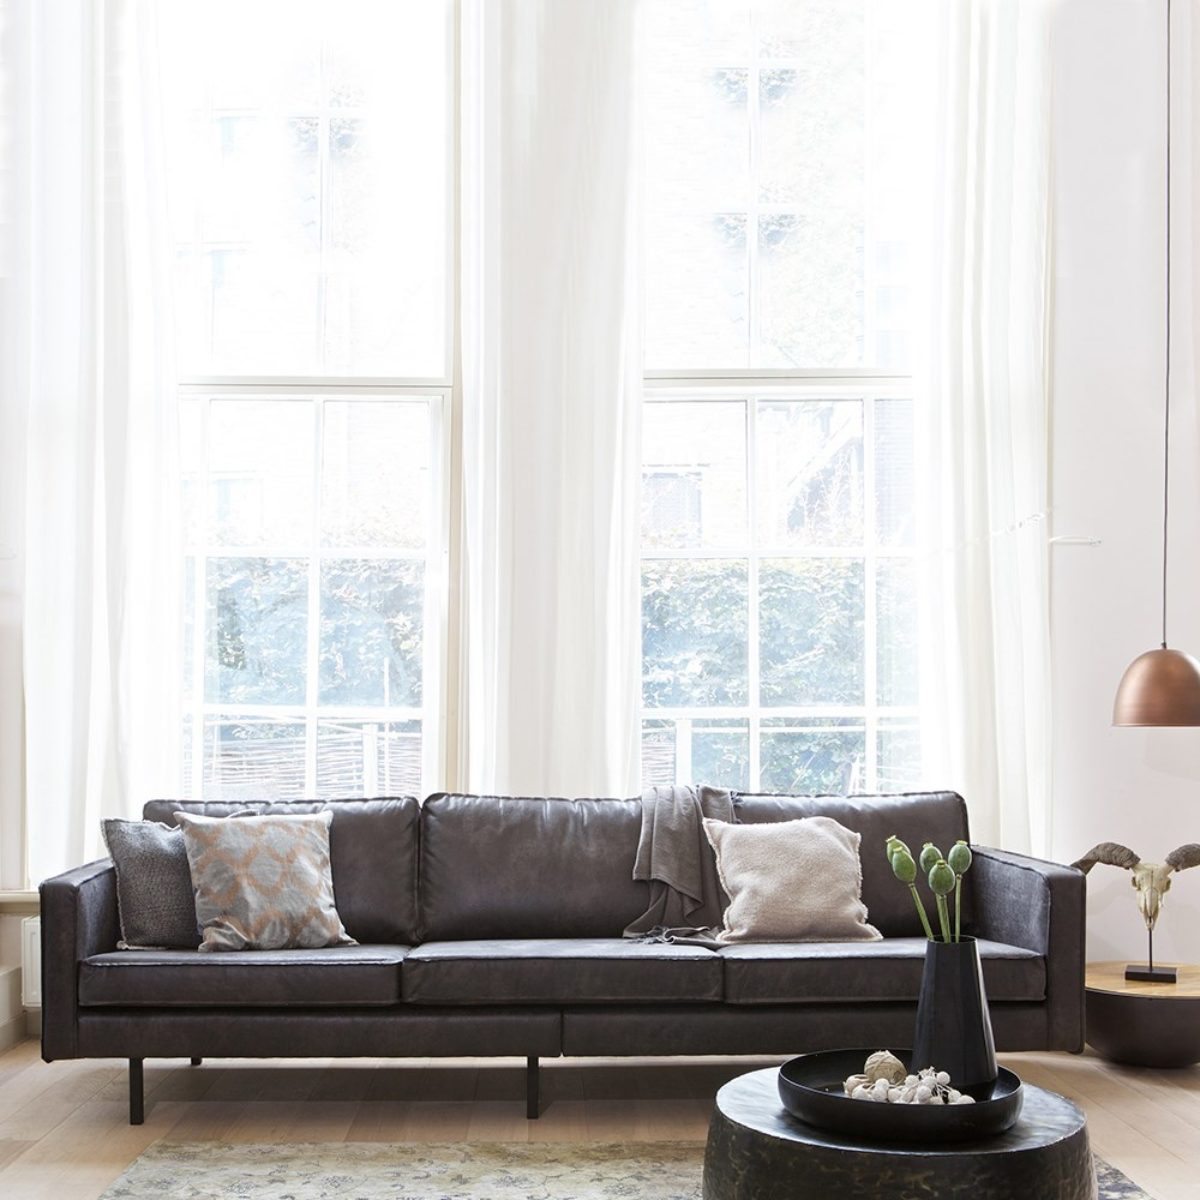 Rodeo 3 Seater Sofa in Black